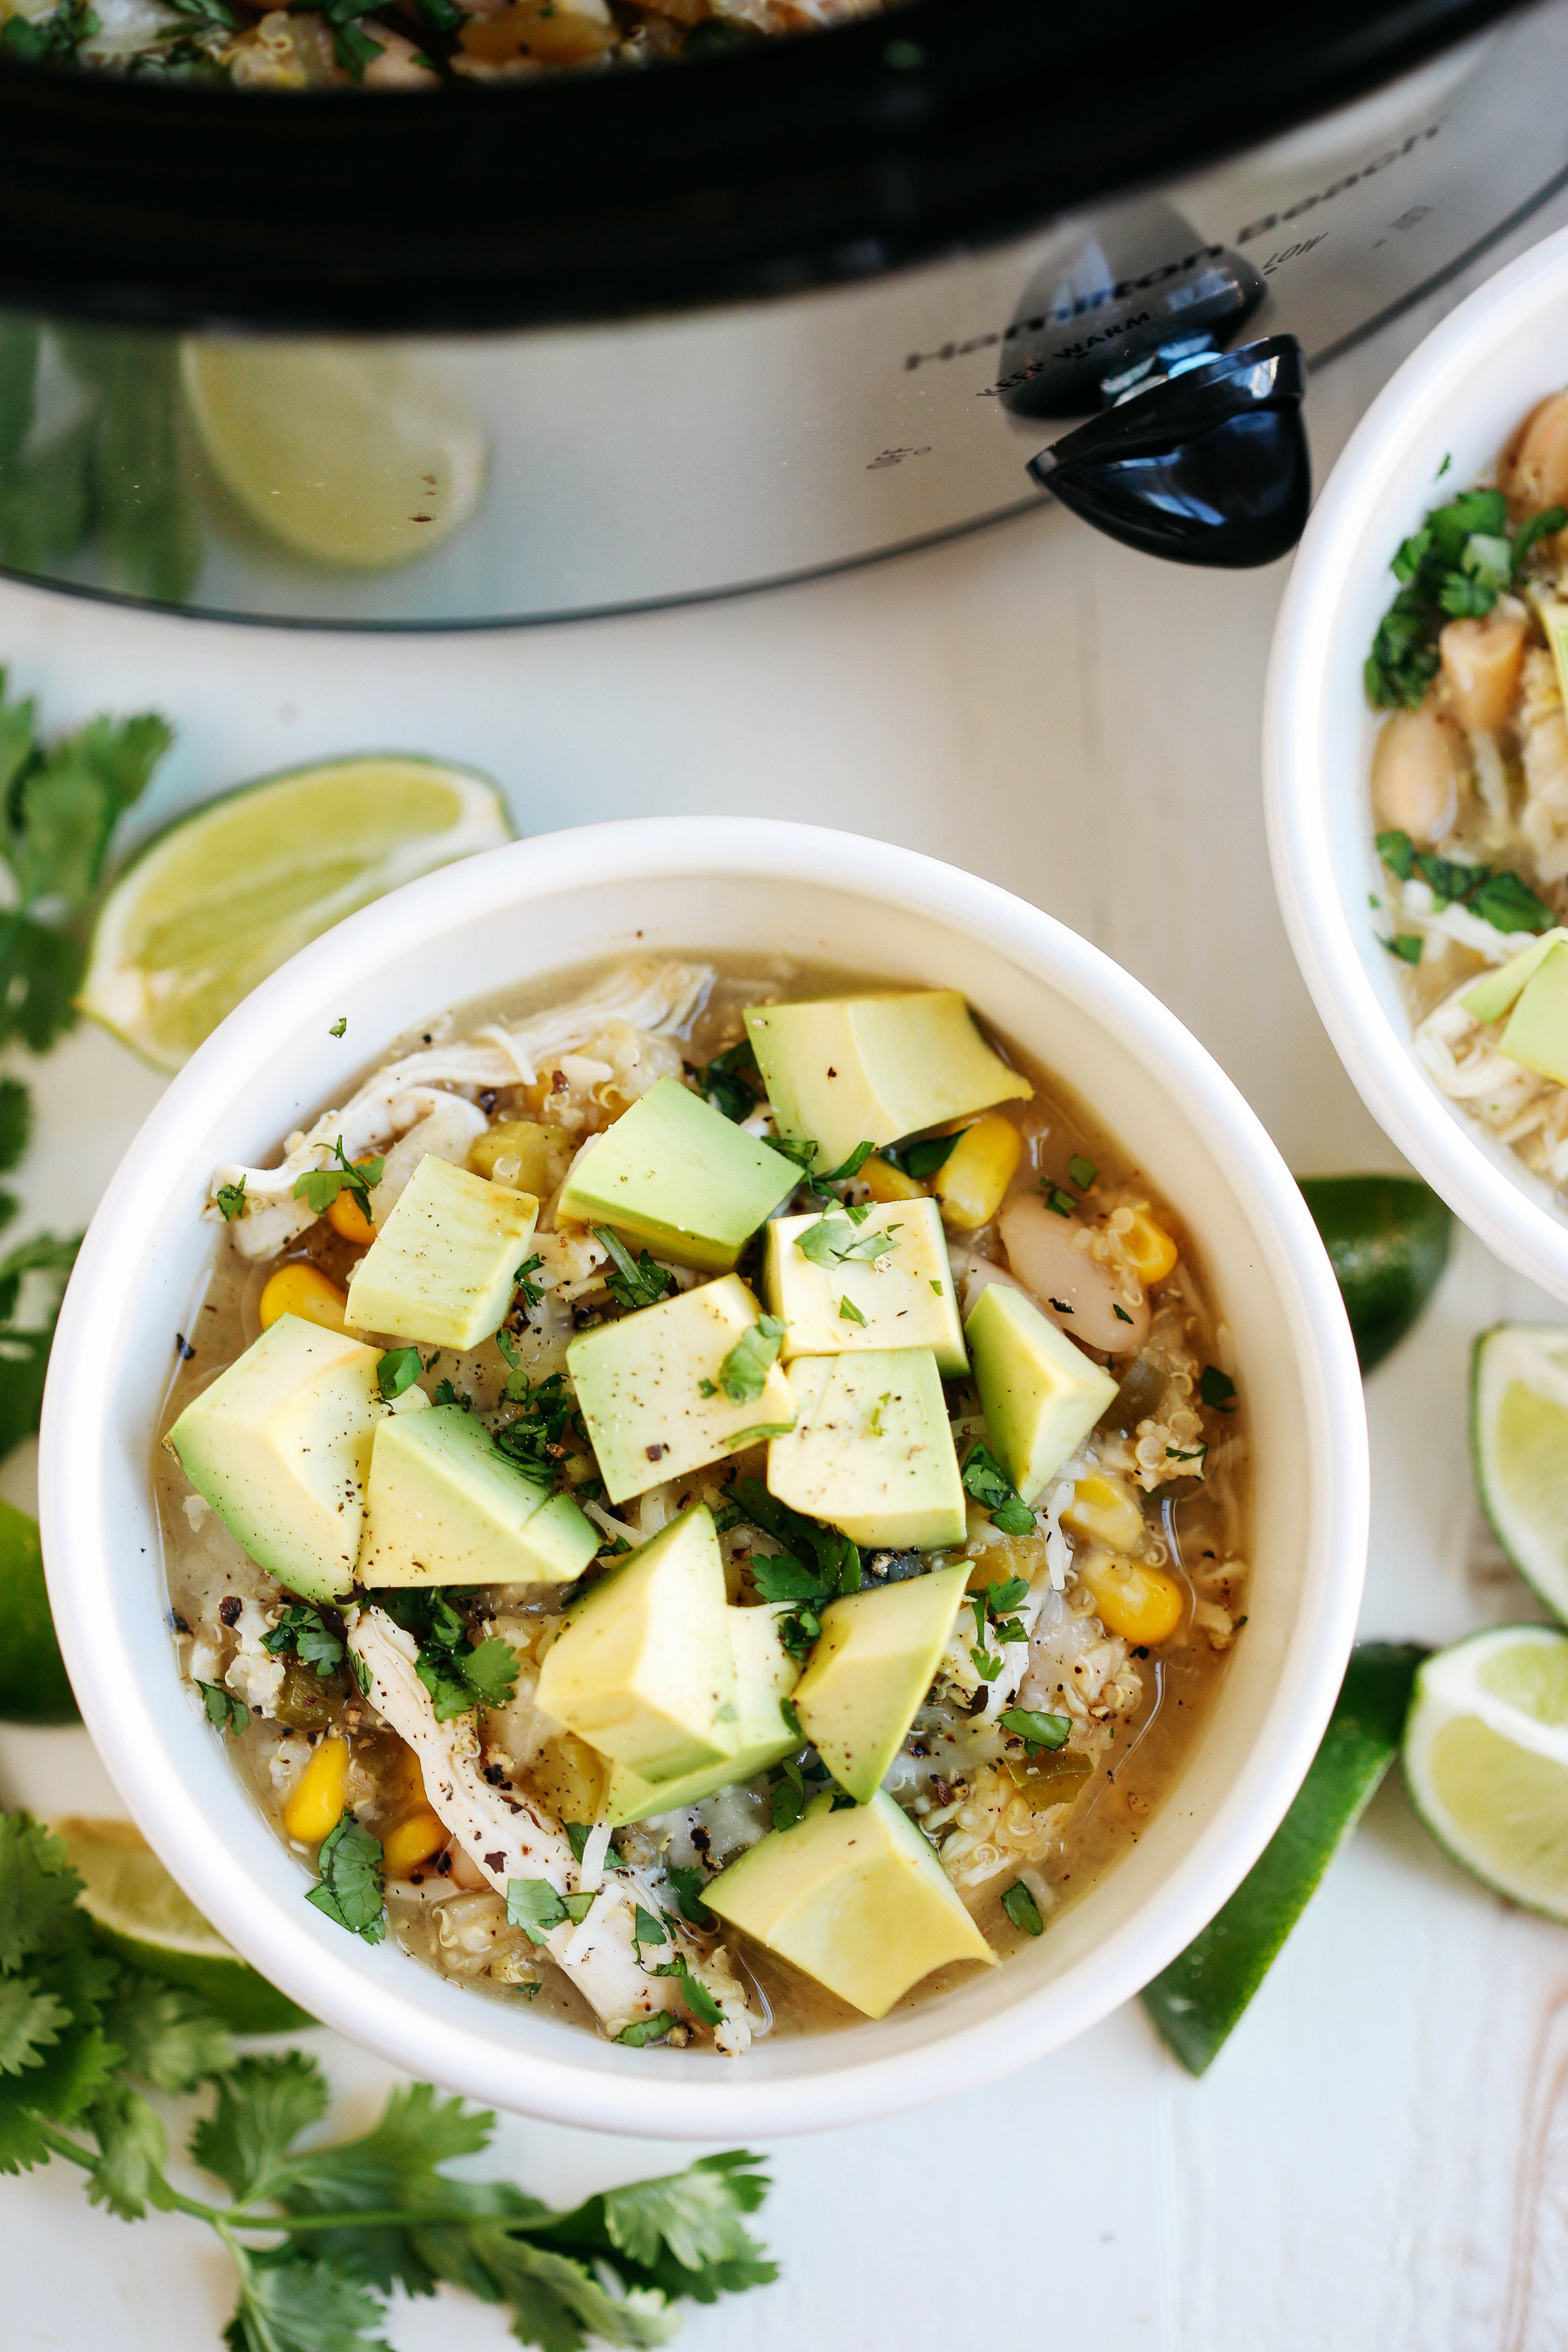 This Slow Cooker White Chicken and Quinoa Chili is the perfect blend of hearty and healthy that will keep you warm and cozy all winter long!